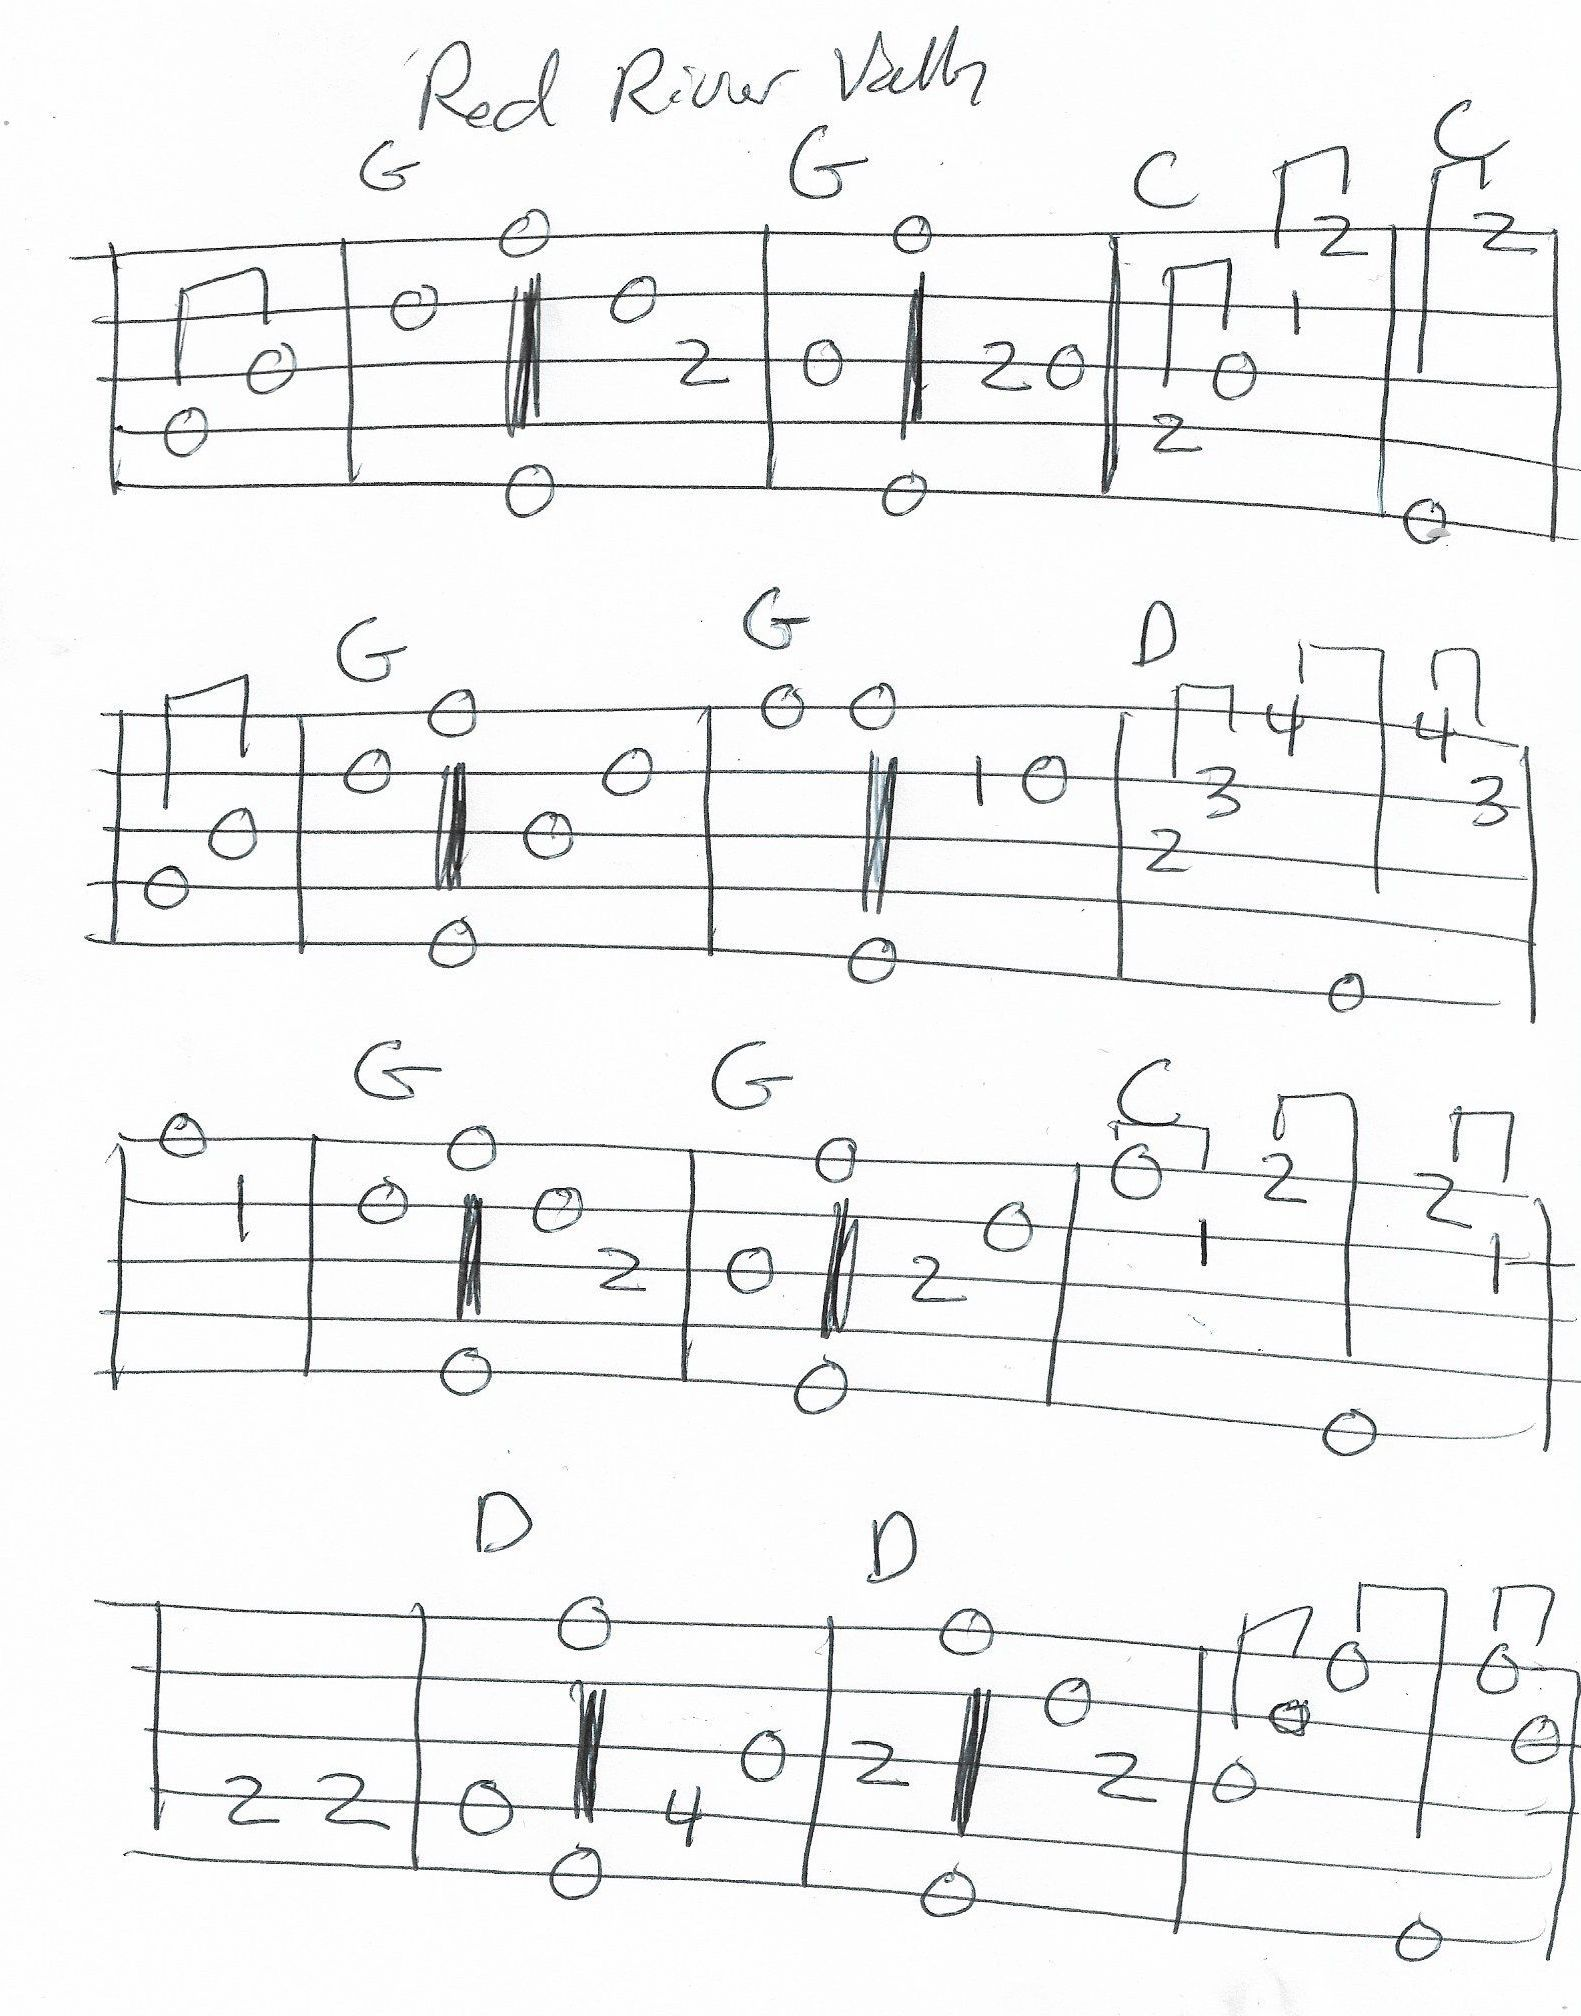 Red River Valley Banjo Melody Tab in G Major